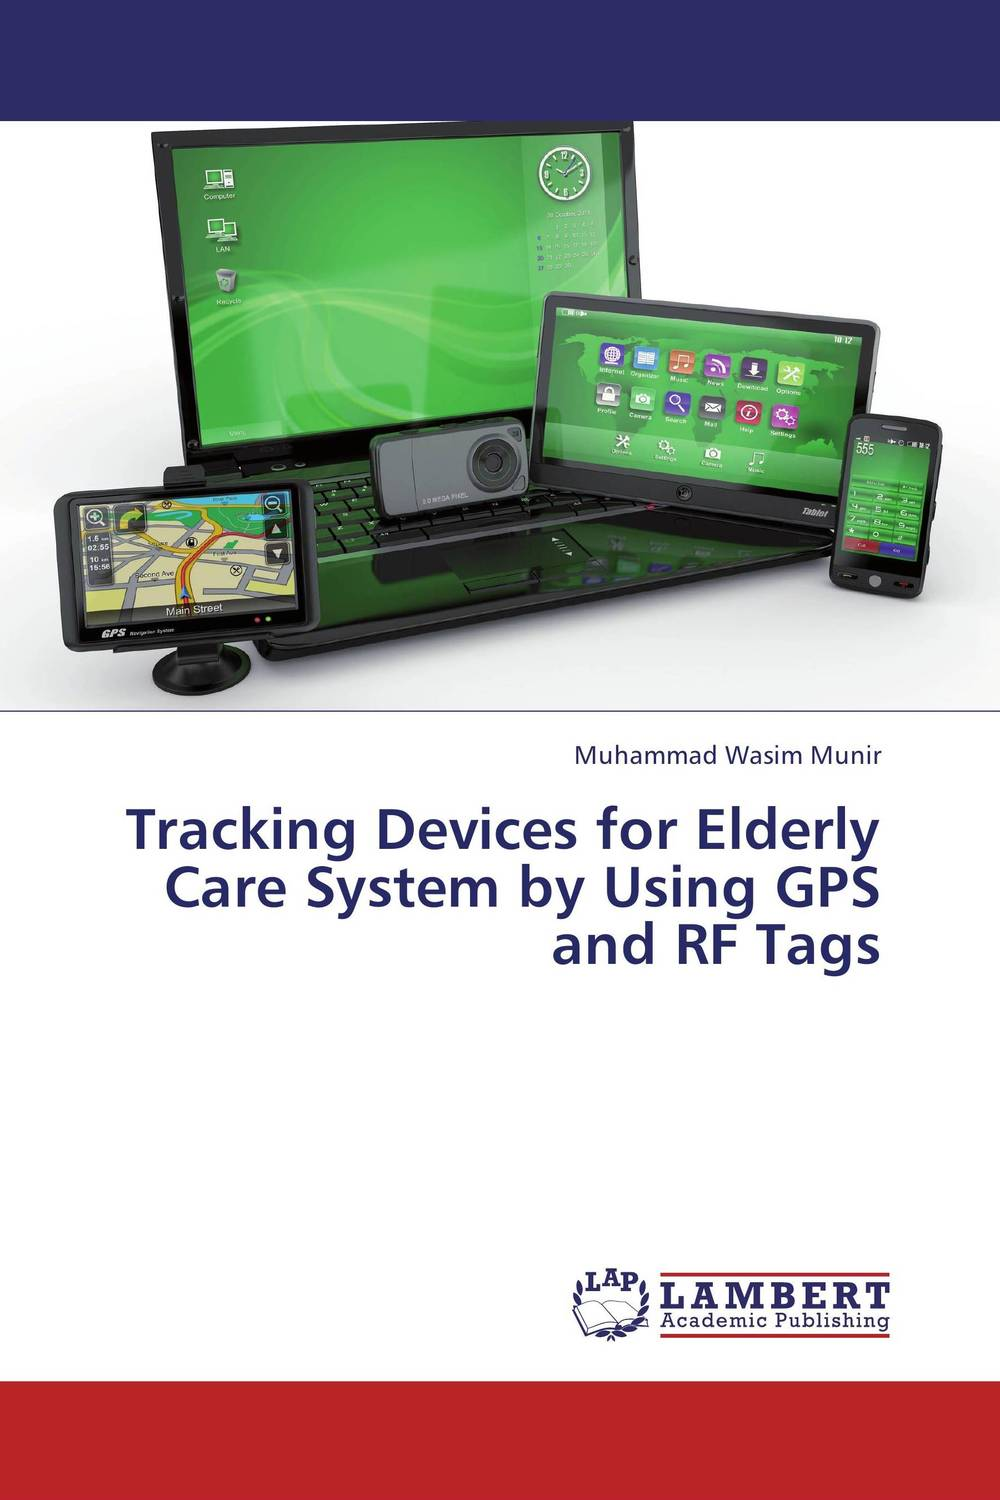 Tracking Devices for Elderly Care System by Using GPS and RF Tags post registered airmail with a tracking number for delivery safer